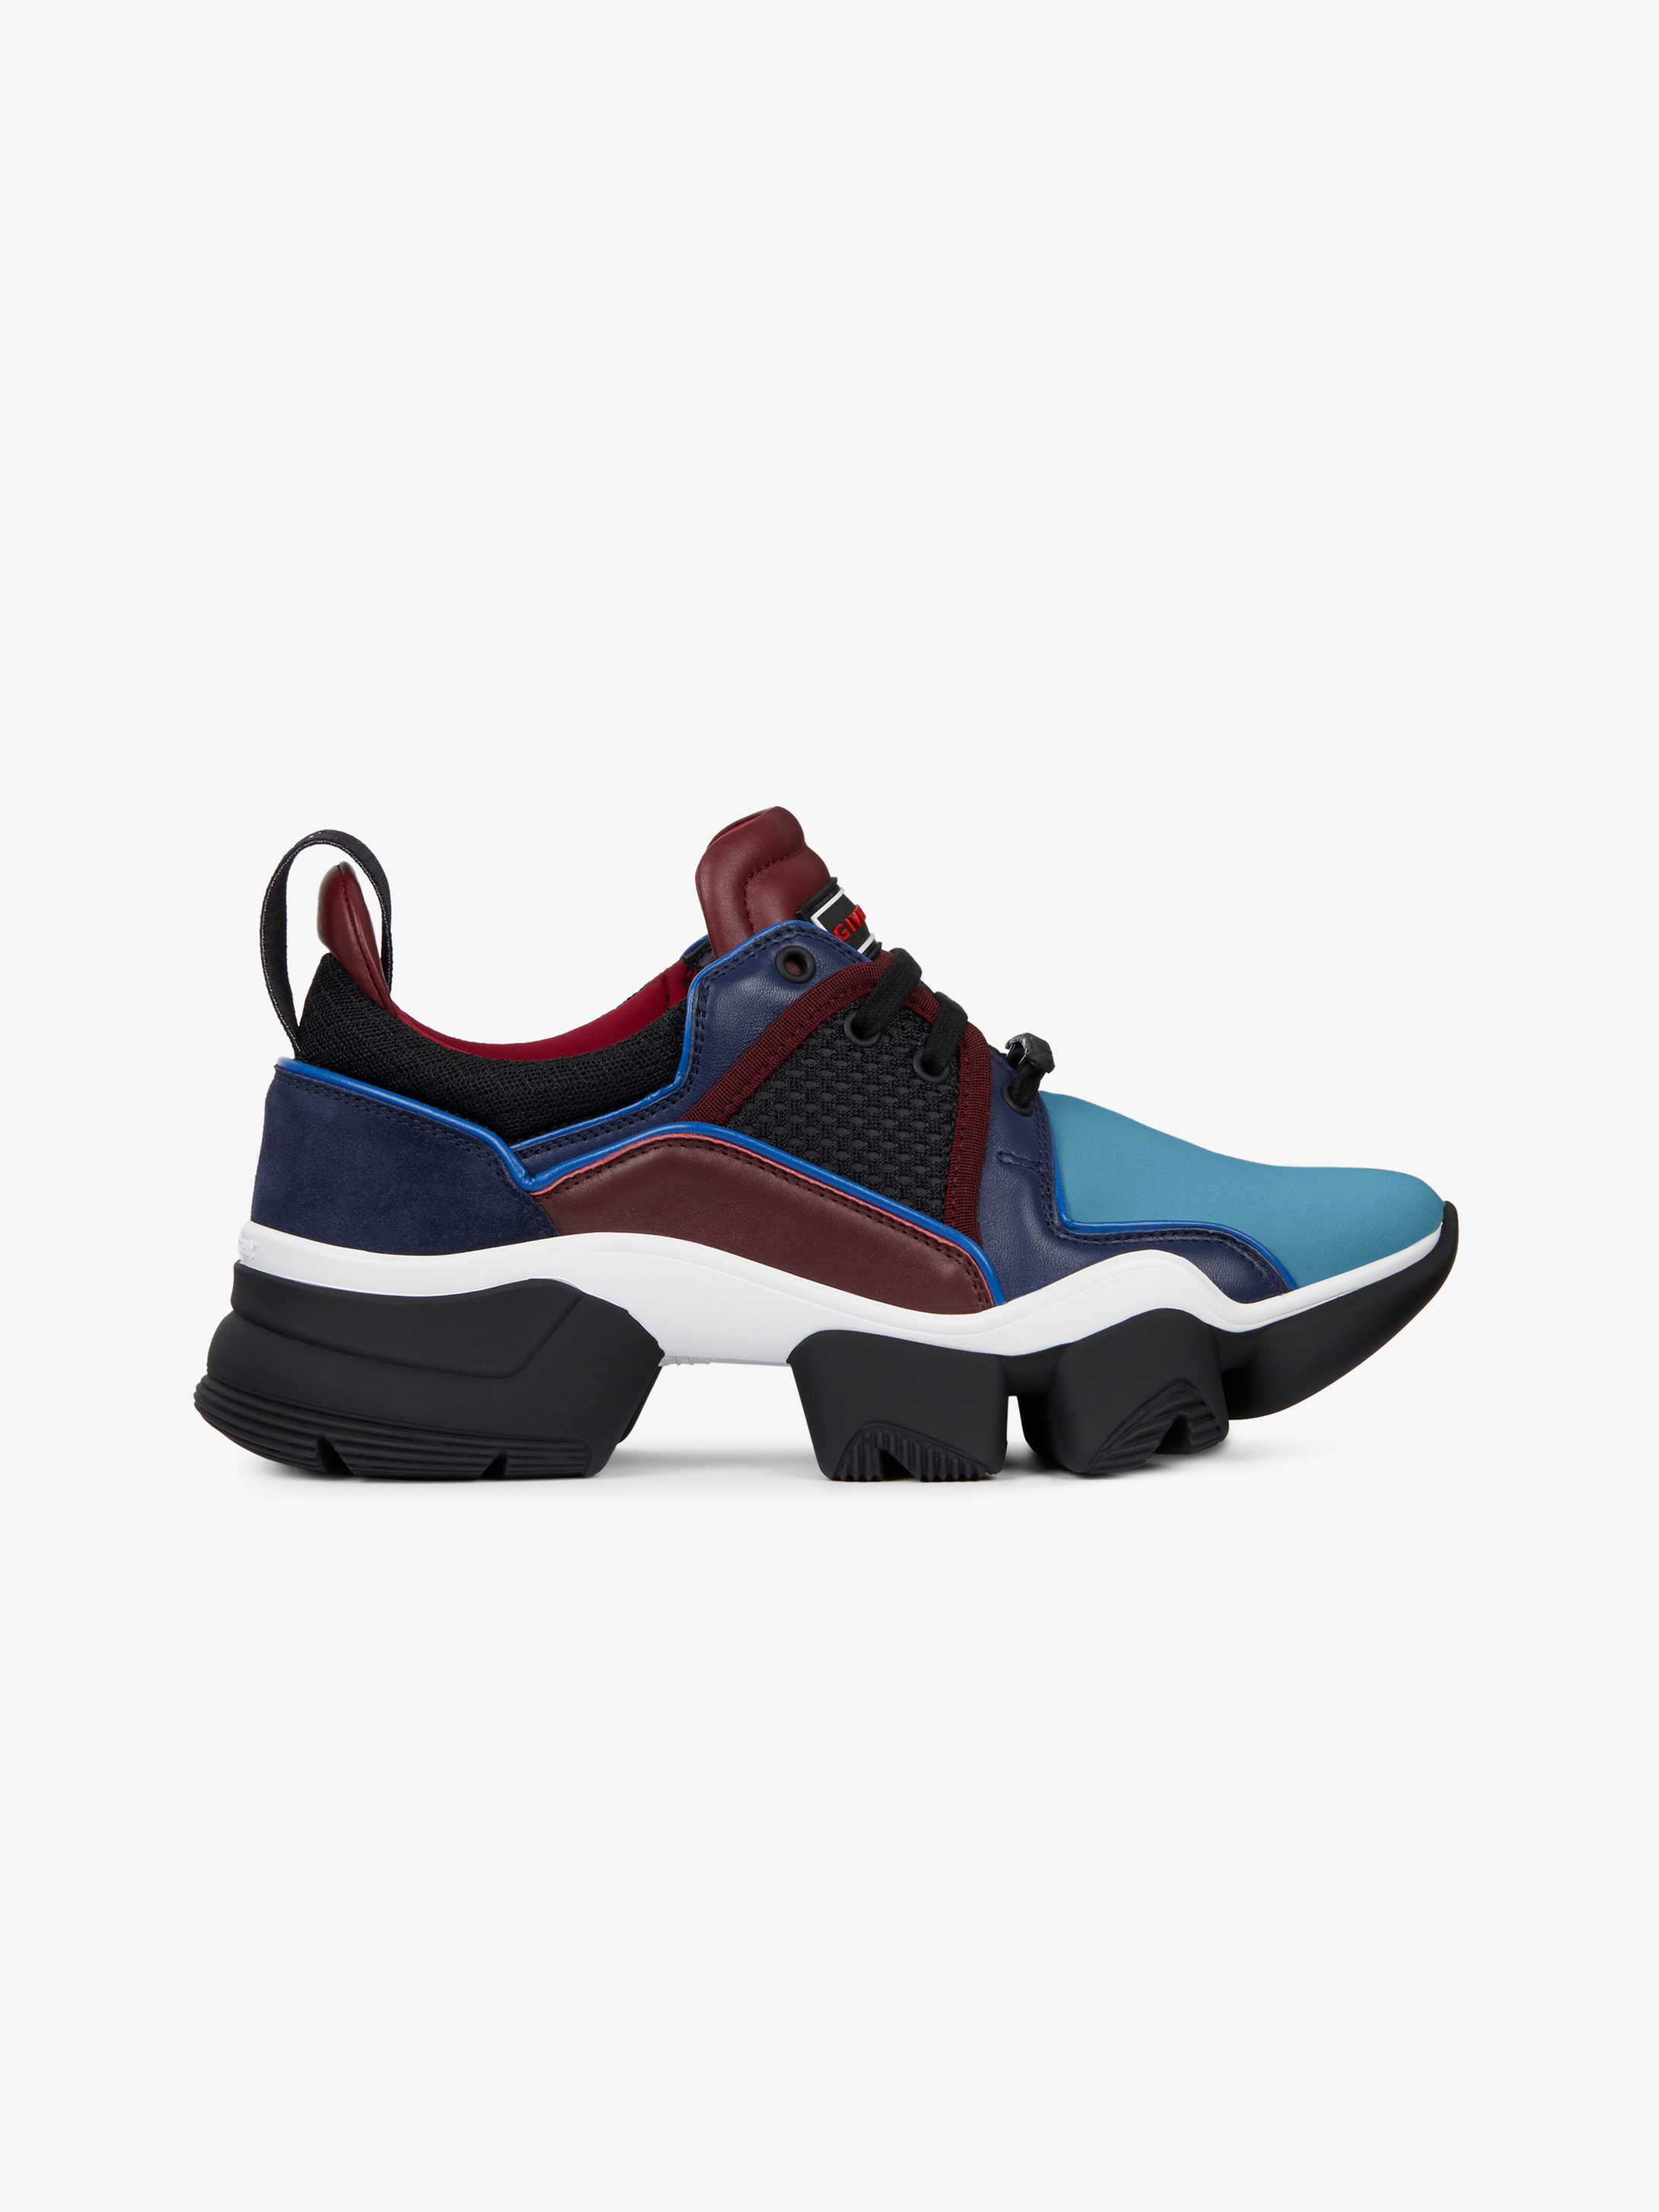 JAW low sneakers in neoprene and leather